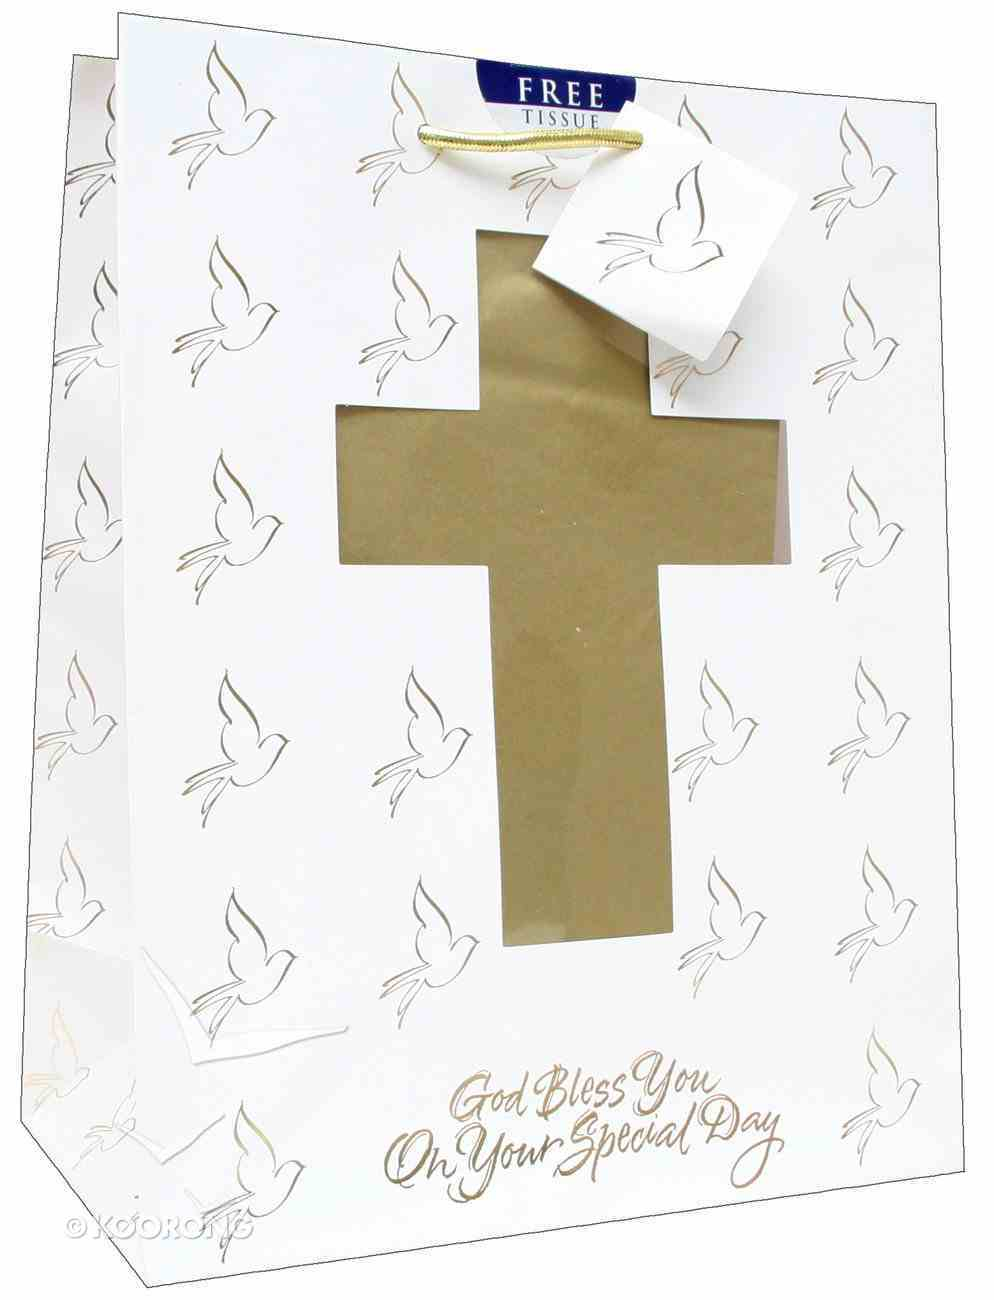 Gift Bag Large: Confirmation/Communion (Incl Tissue Paper & Gift Tag) Stationery